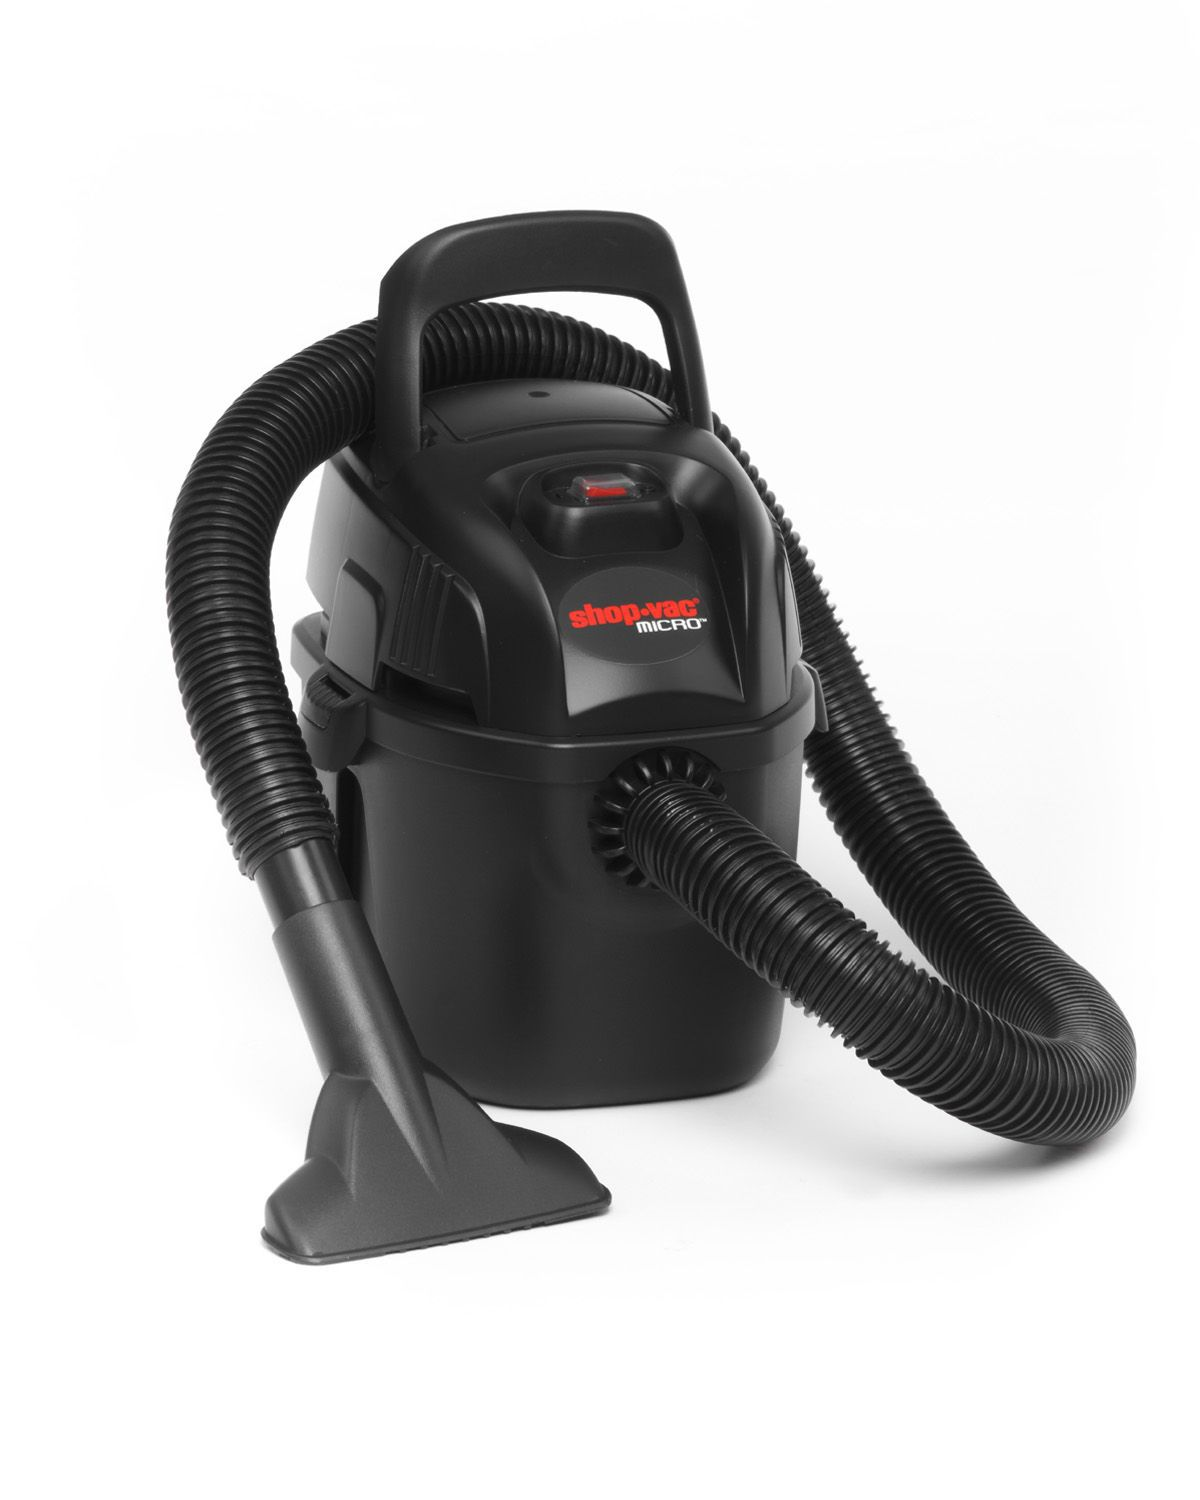 Shop Vac Micro Corded 4l Bagged Wet & Dry Vacuum Mcs-sq11